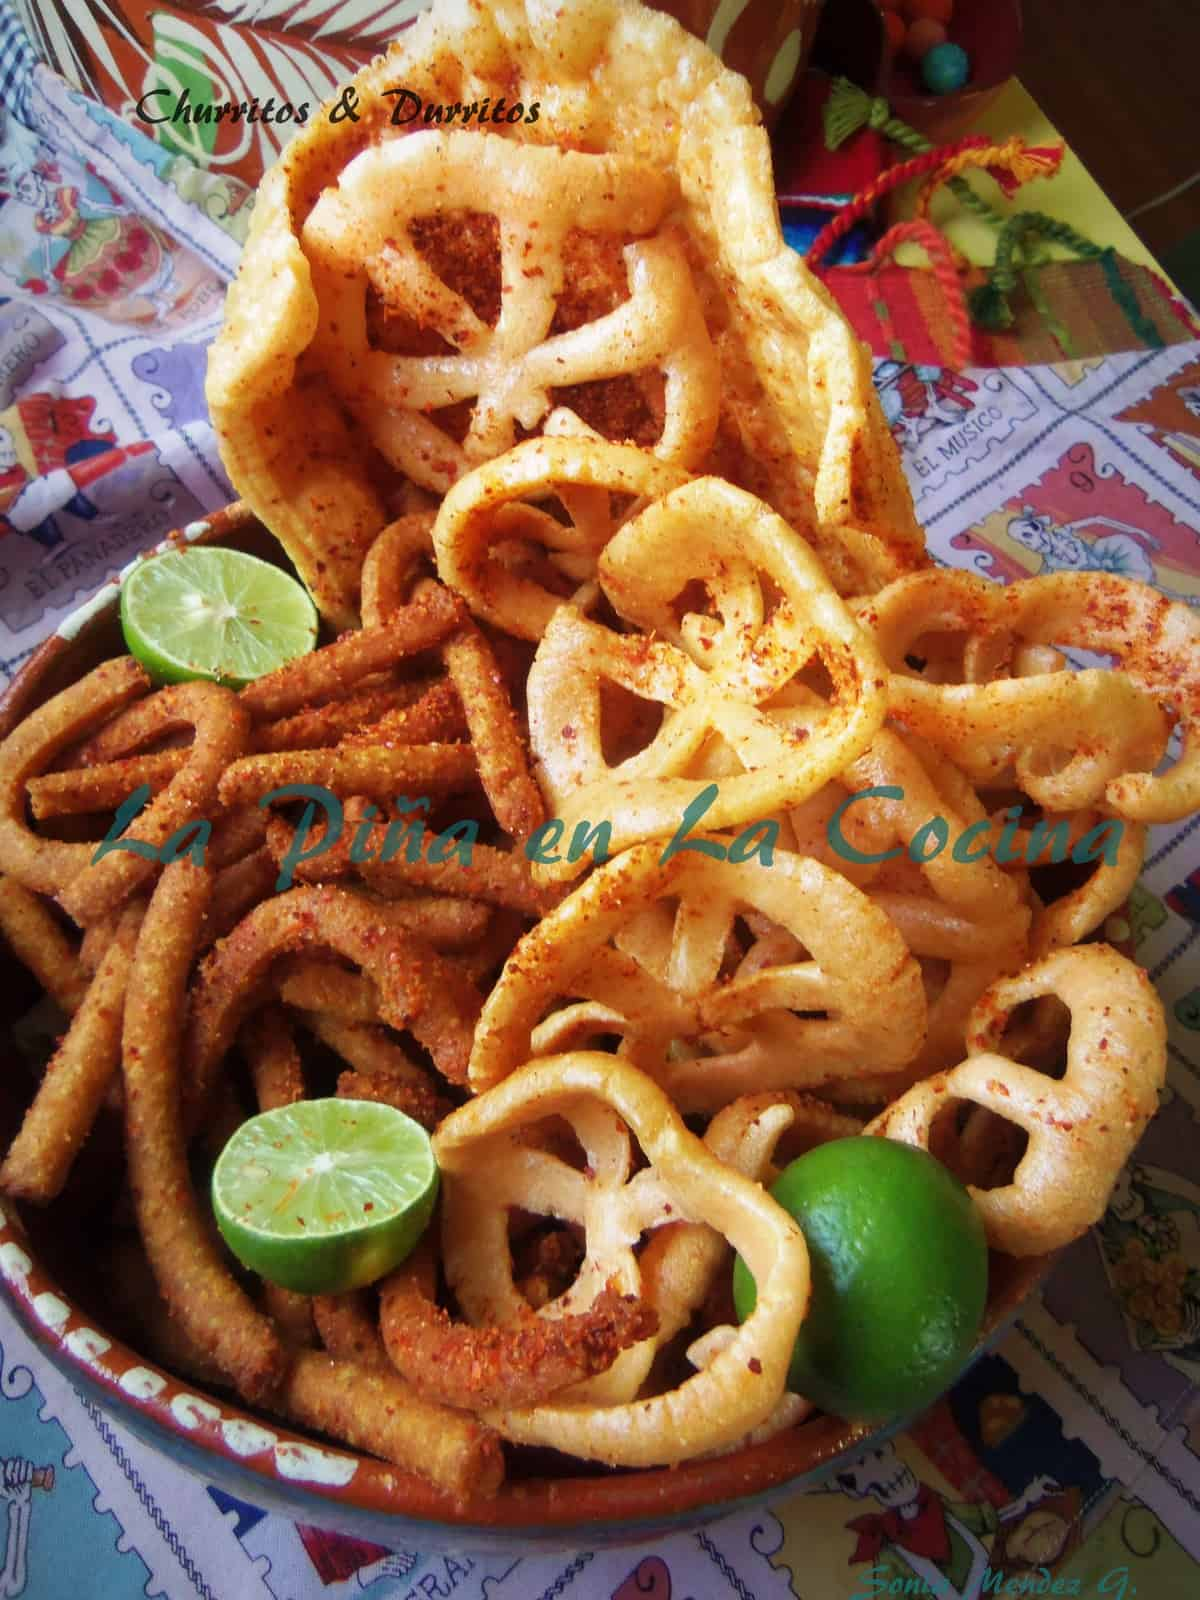 Churritos and Durritos. Two popular mexican snacks or antojitos